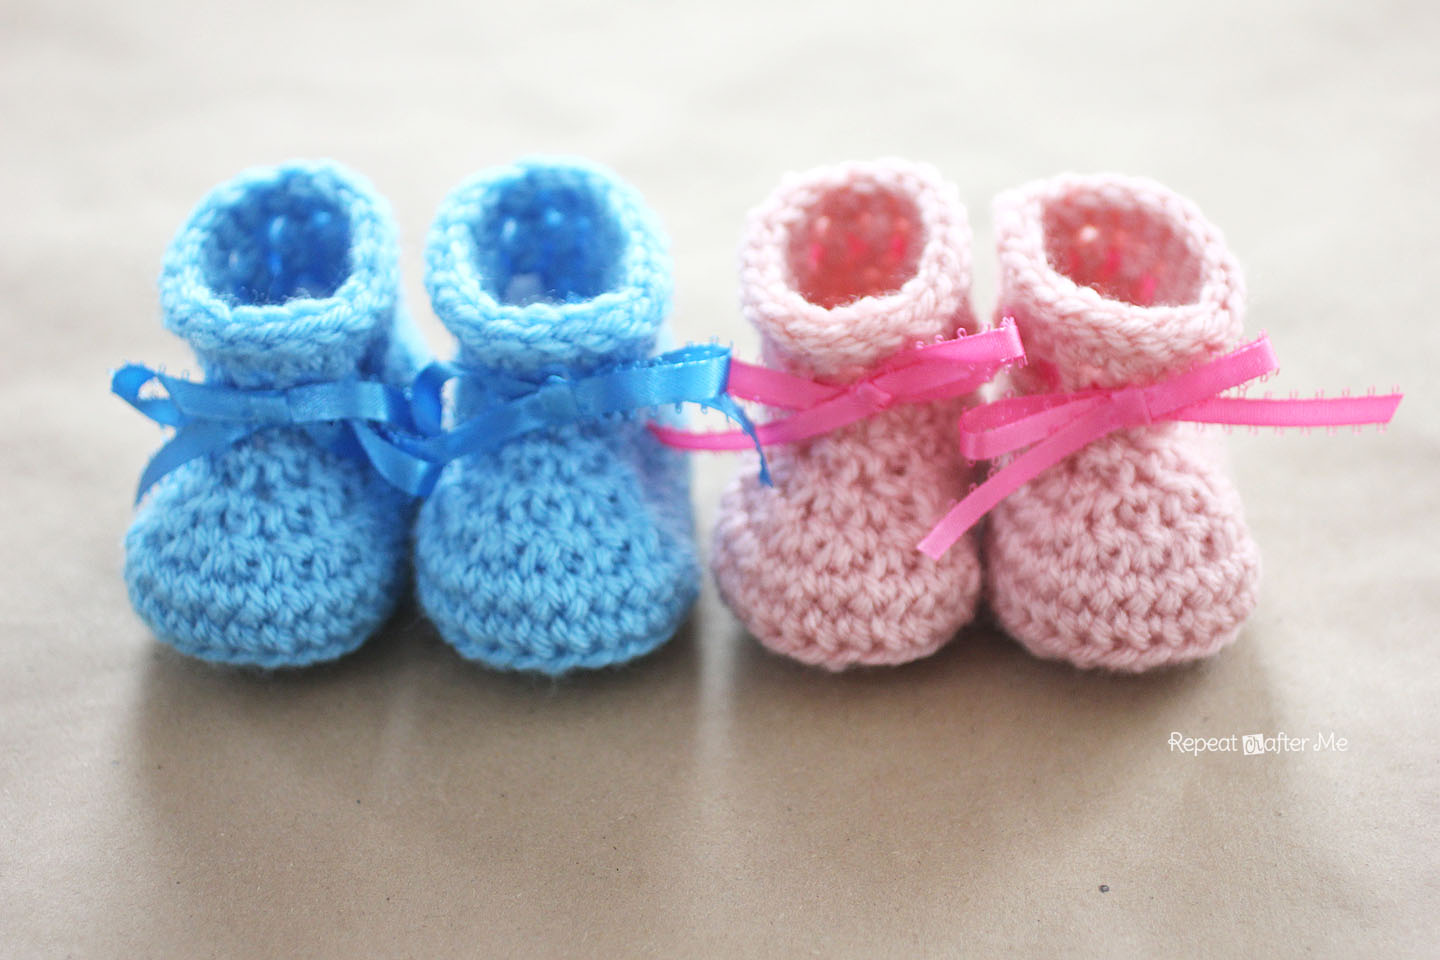 Crochet Baby Booties Pattern With Pictures : Crochet Newborn Baby Booties Pattern - Repeat Crafter Me